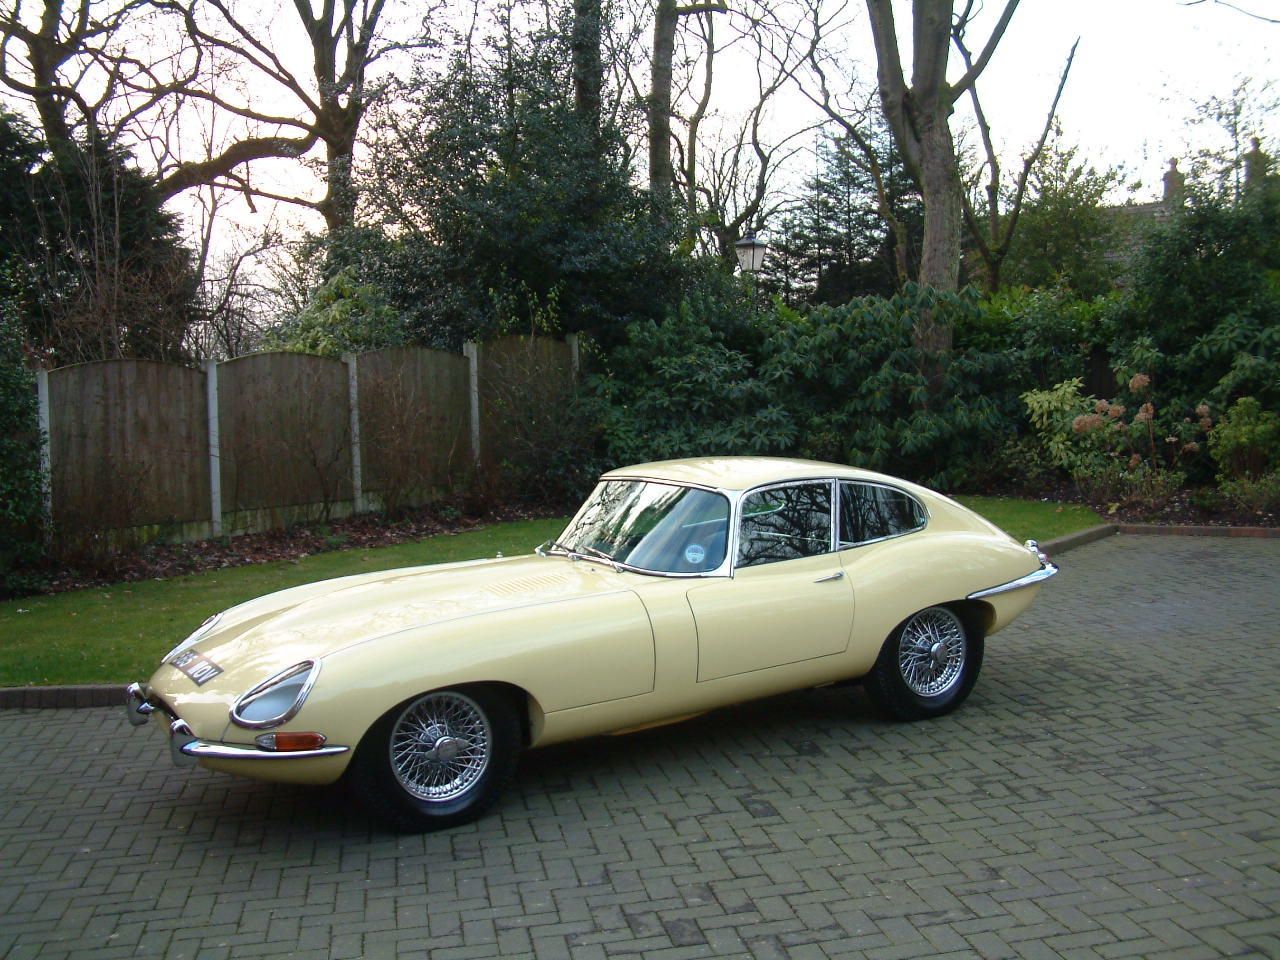 https://i1.wp.com/svs-ltd.com/wp-content/uploads/2017/10/1964-Jaguar-E-Type-3.8-FHC-Multi-Concours-085.jpg